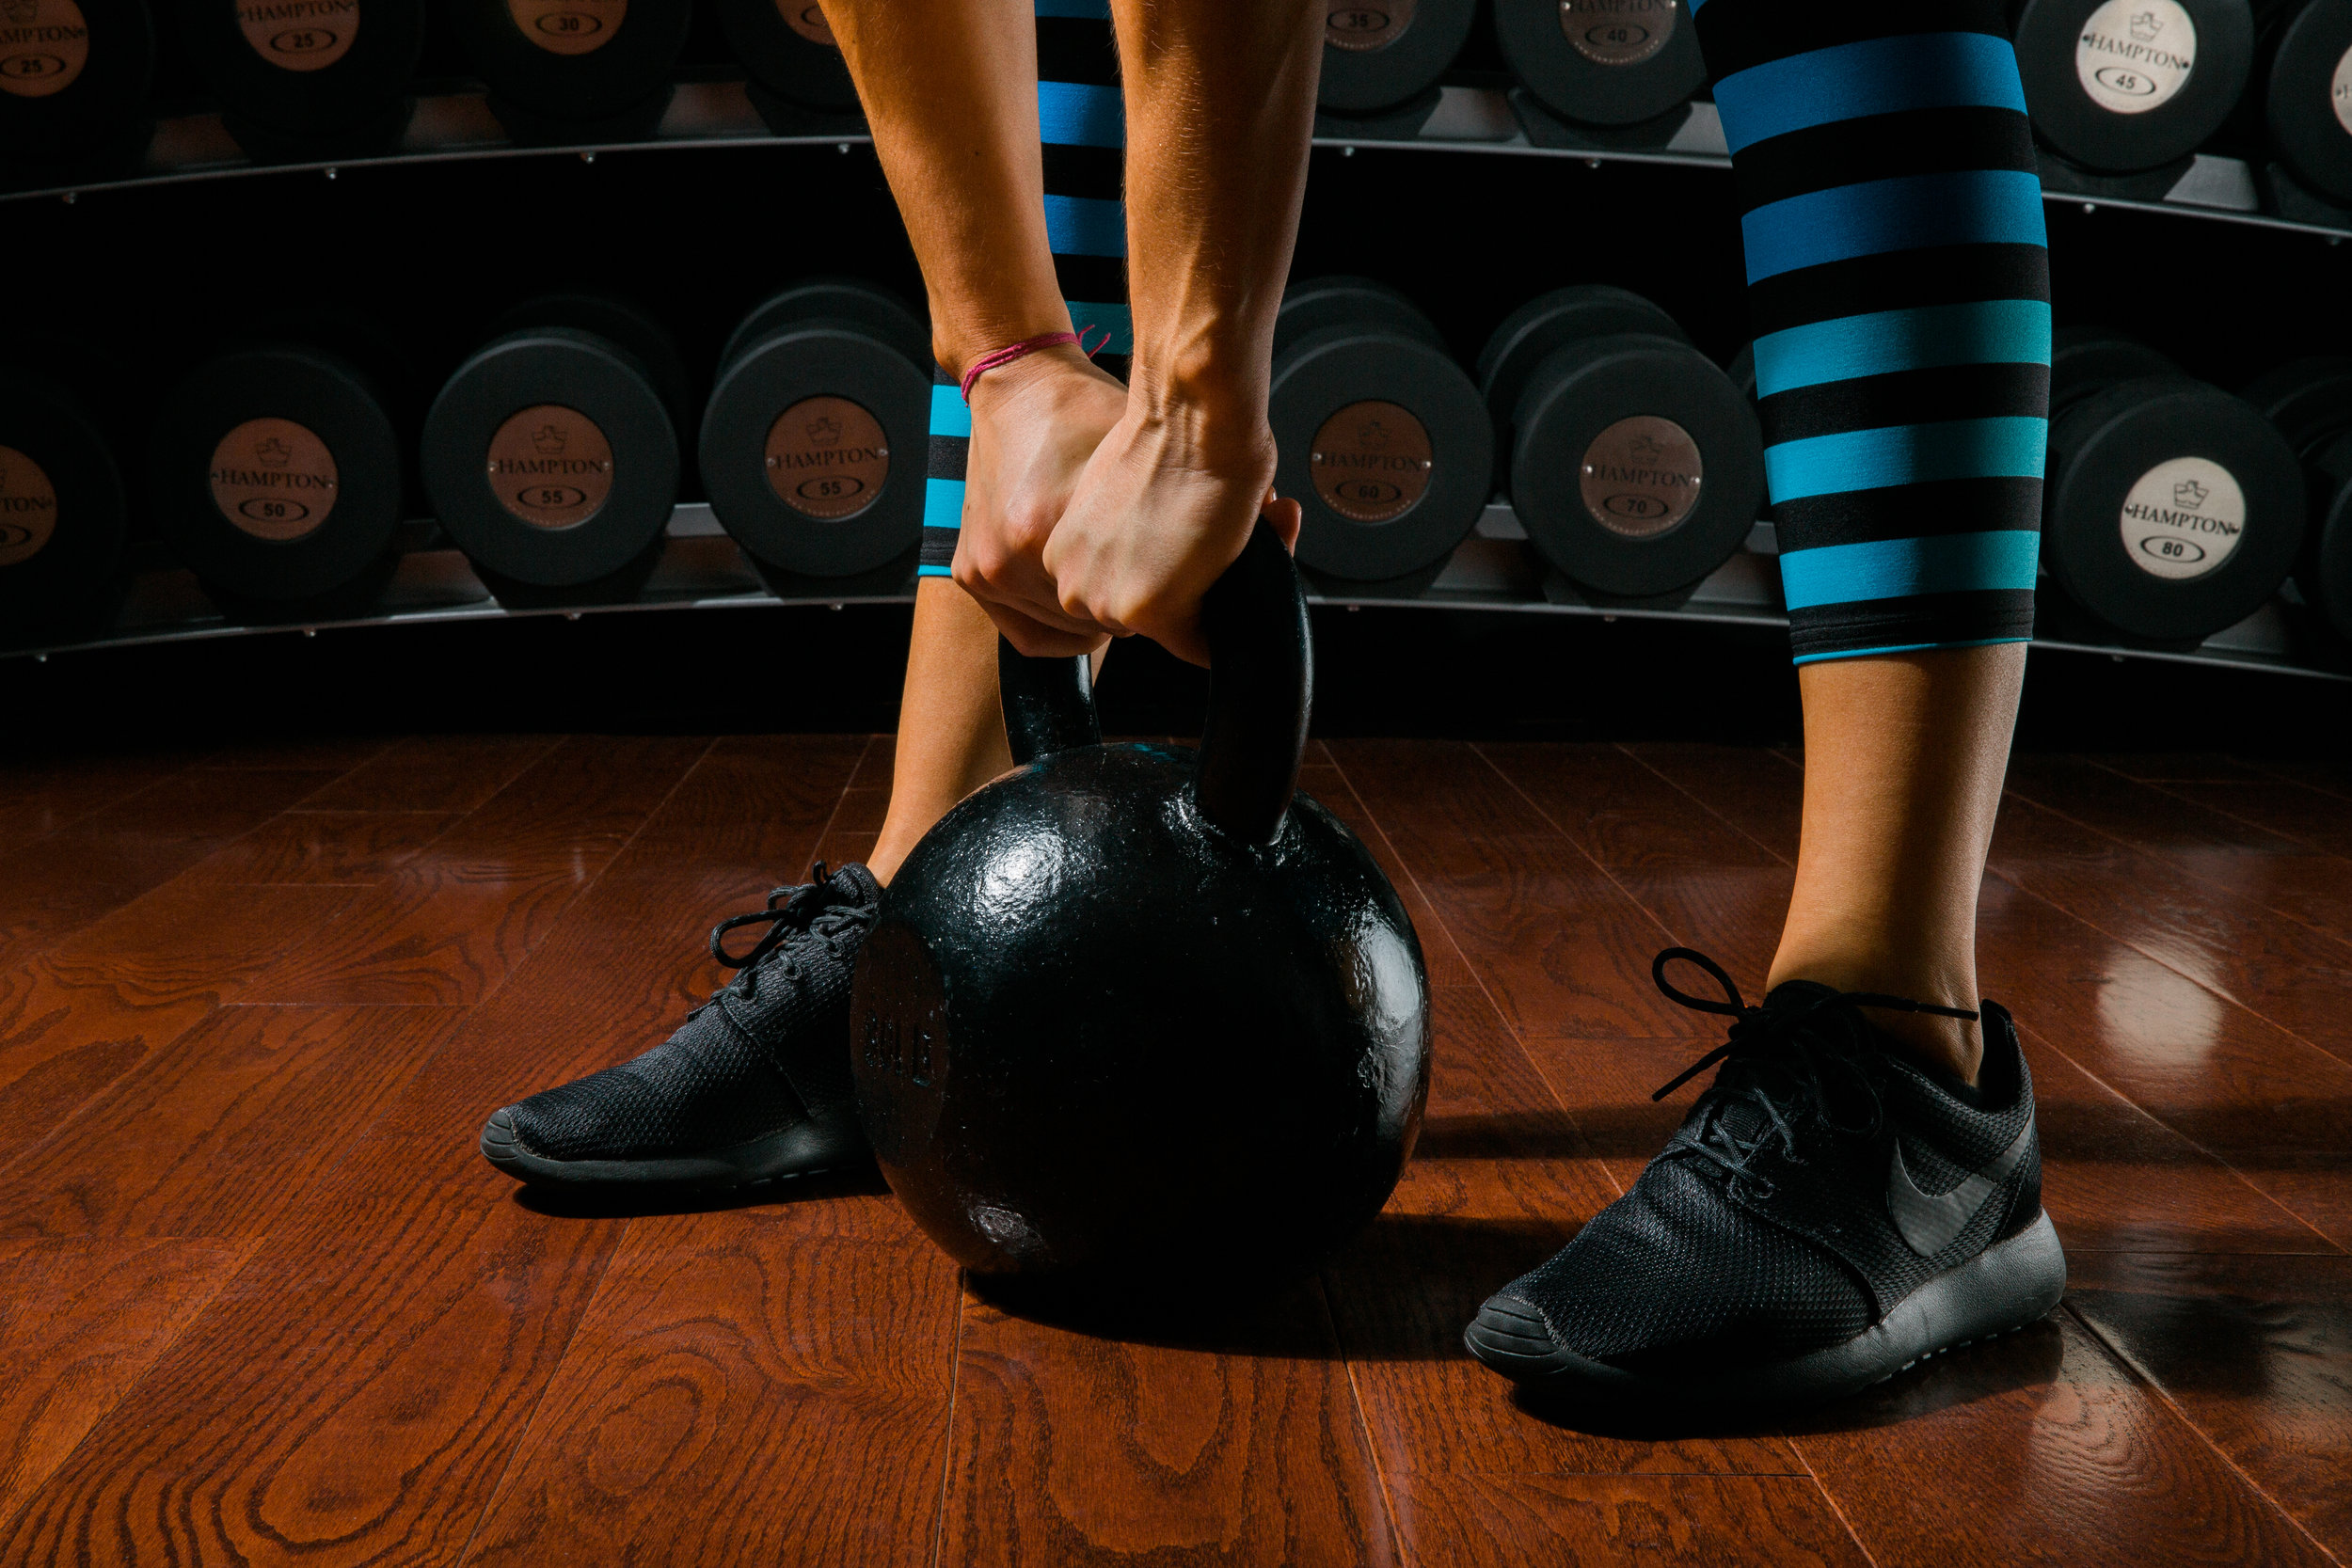 Kettlebell Workout - The P.E. Club